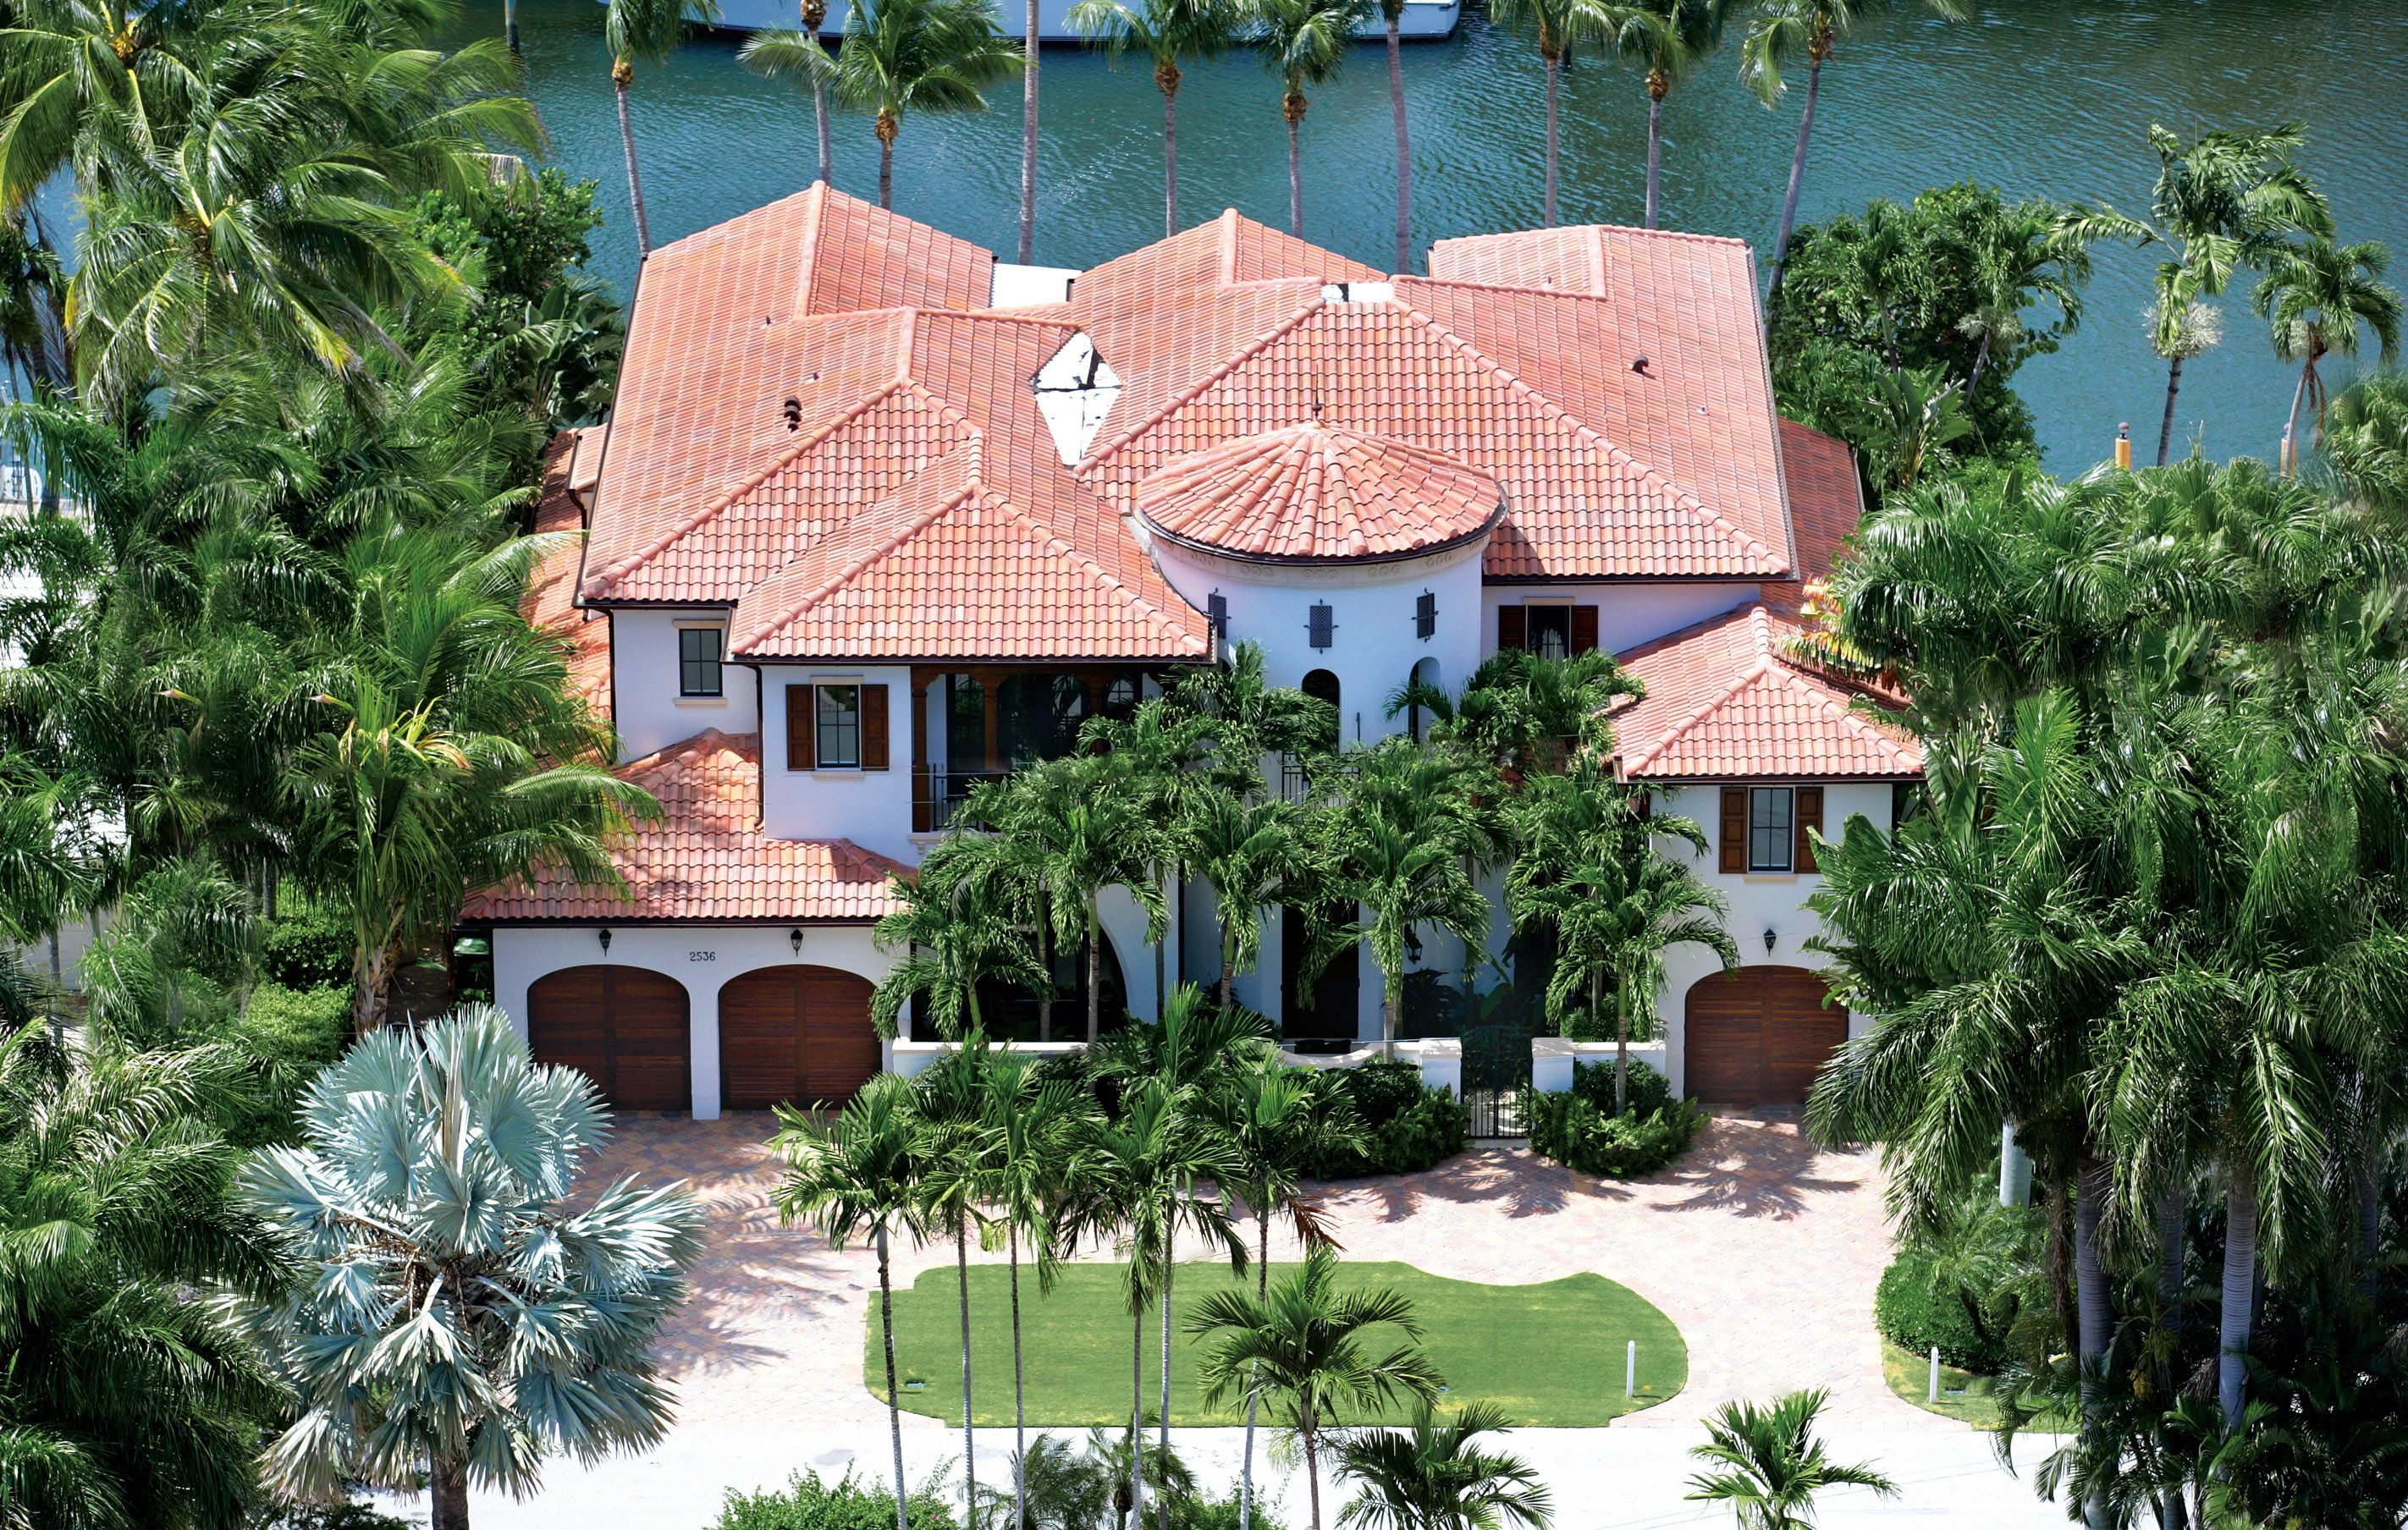 6br72ba3cgpool95 waterfront home for sale in fort